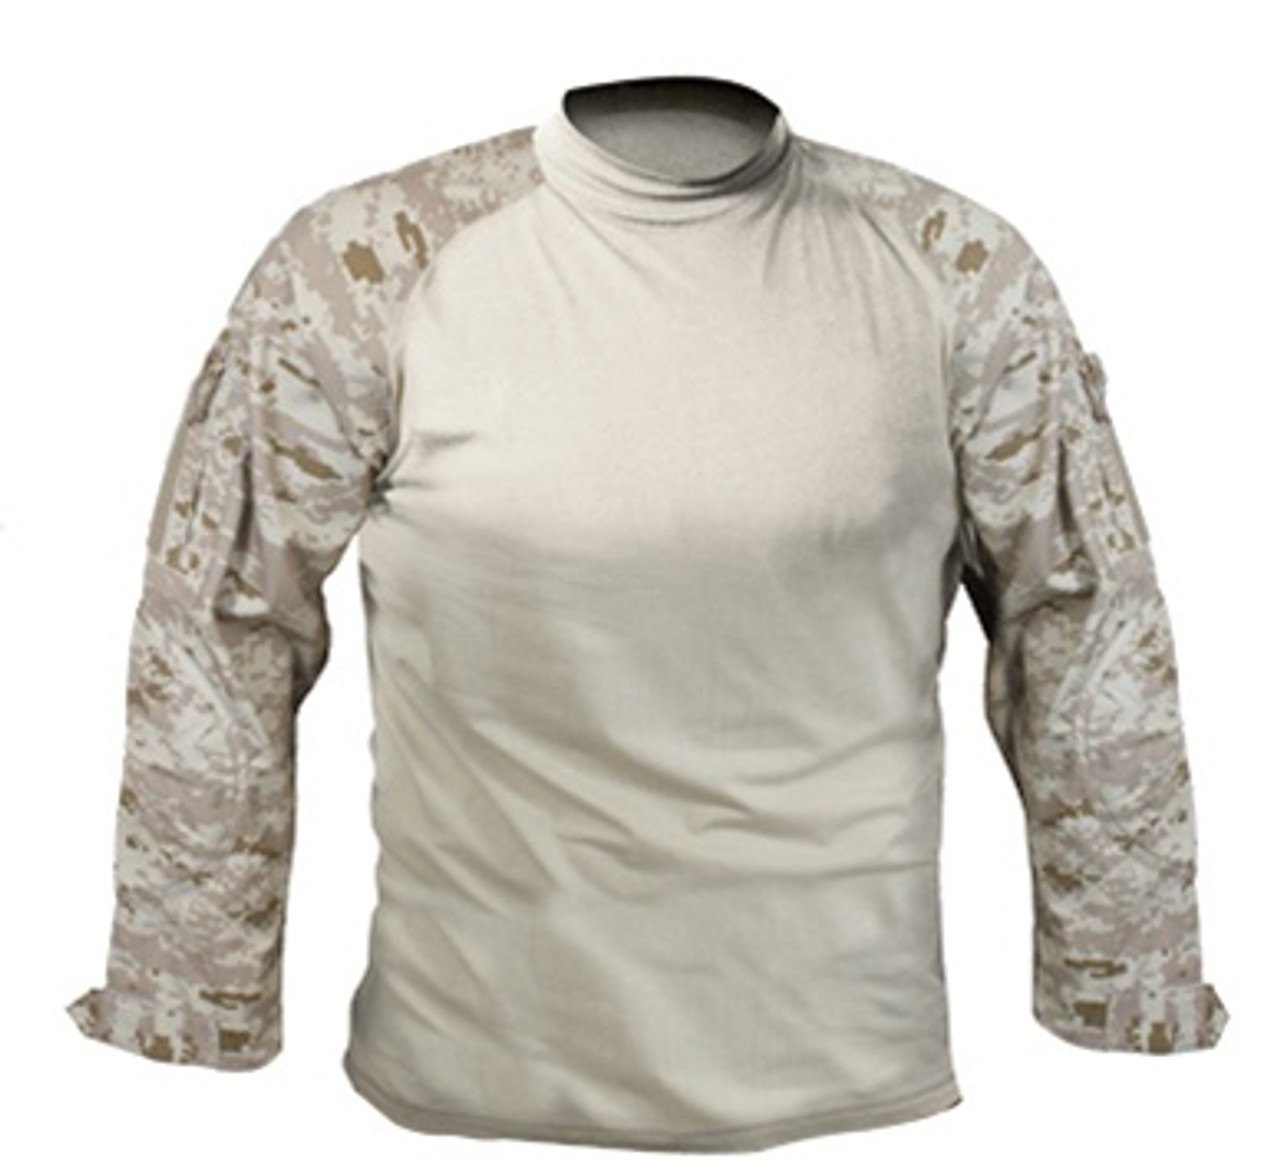 Desert Digital Camo Combat Shirt from Hessen Tactical